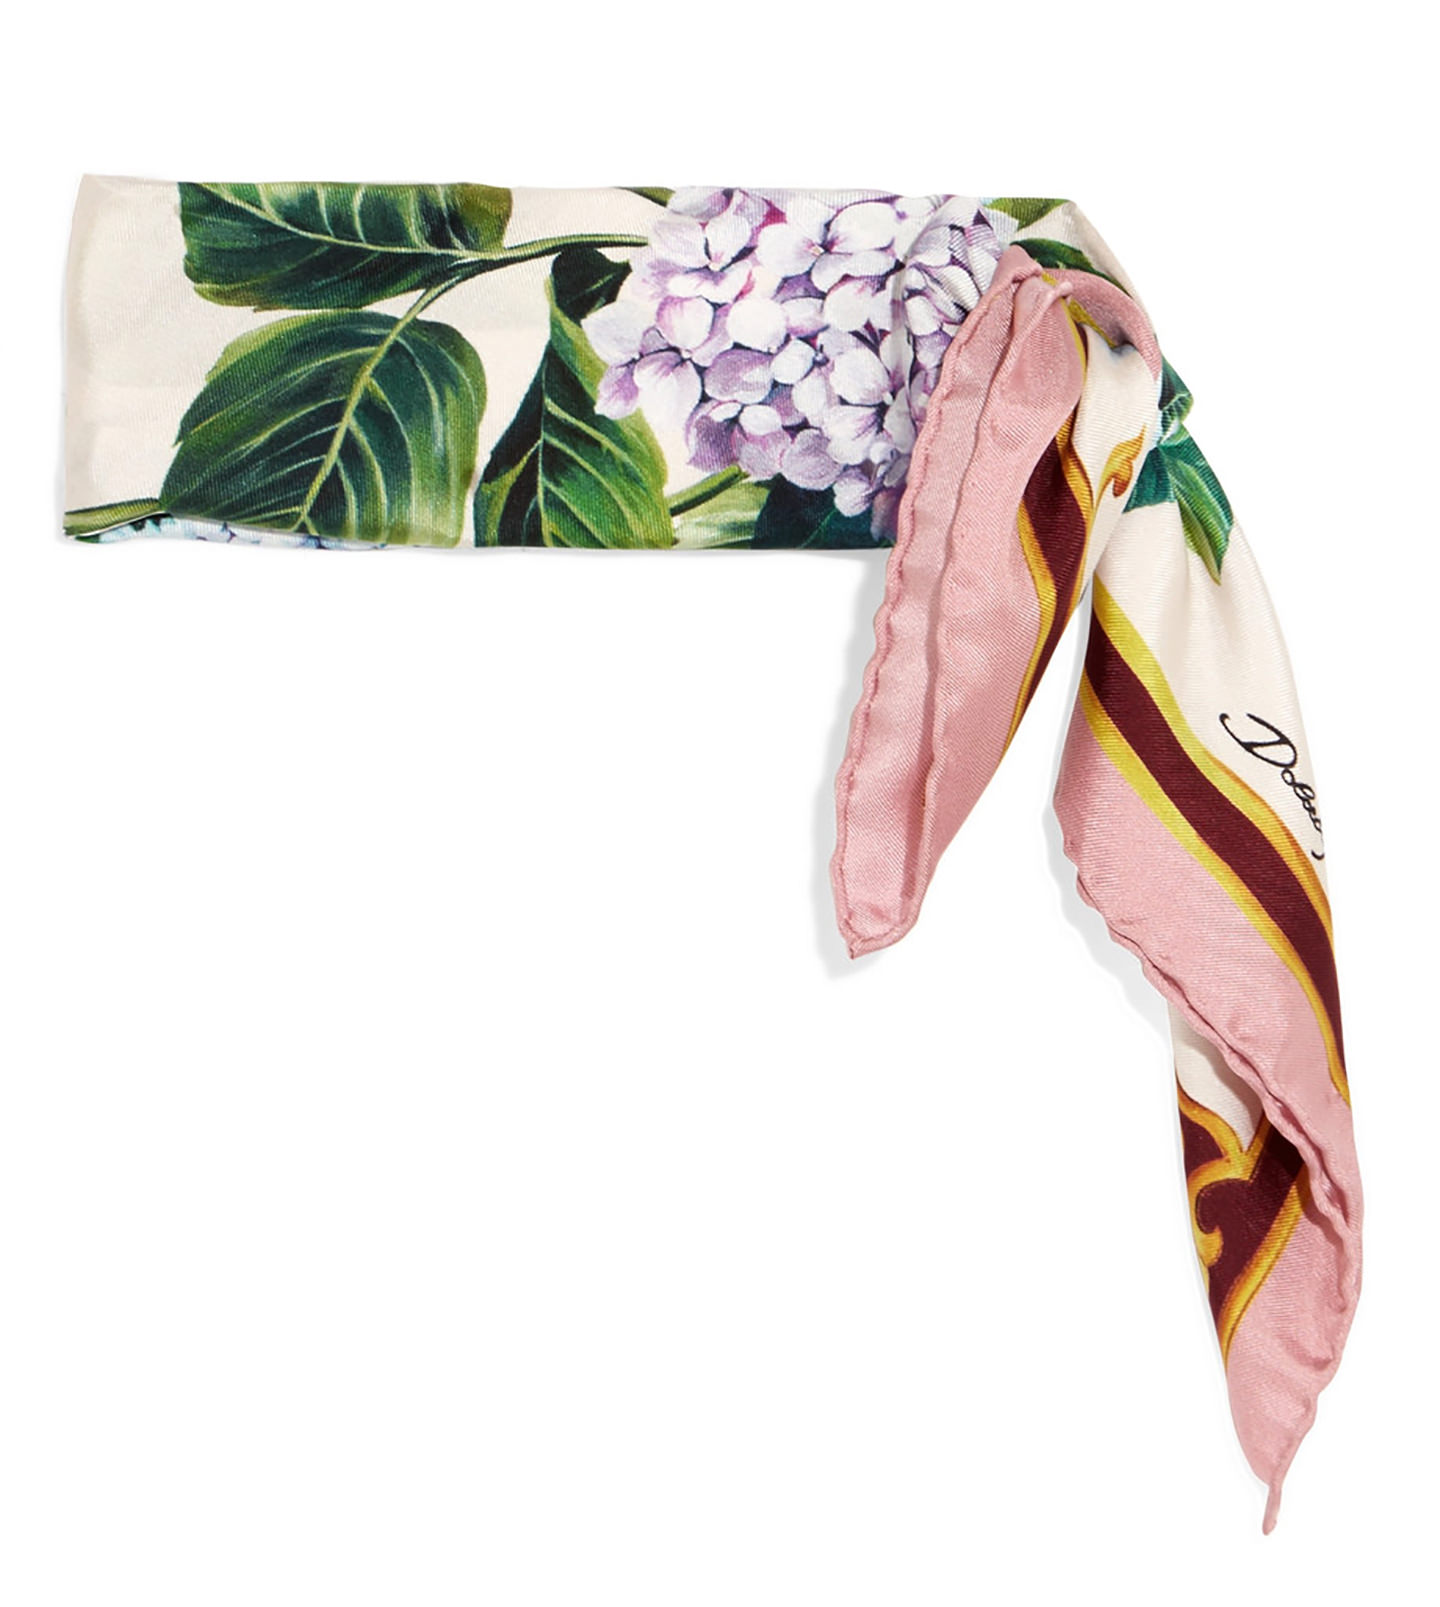 Blog-Mode-And-The-City-224-foulard-hortensias-dolce-gabbana